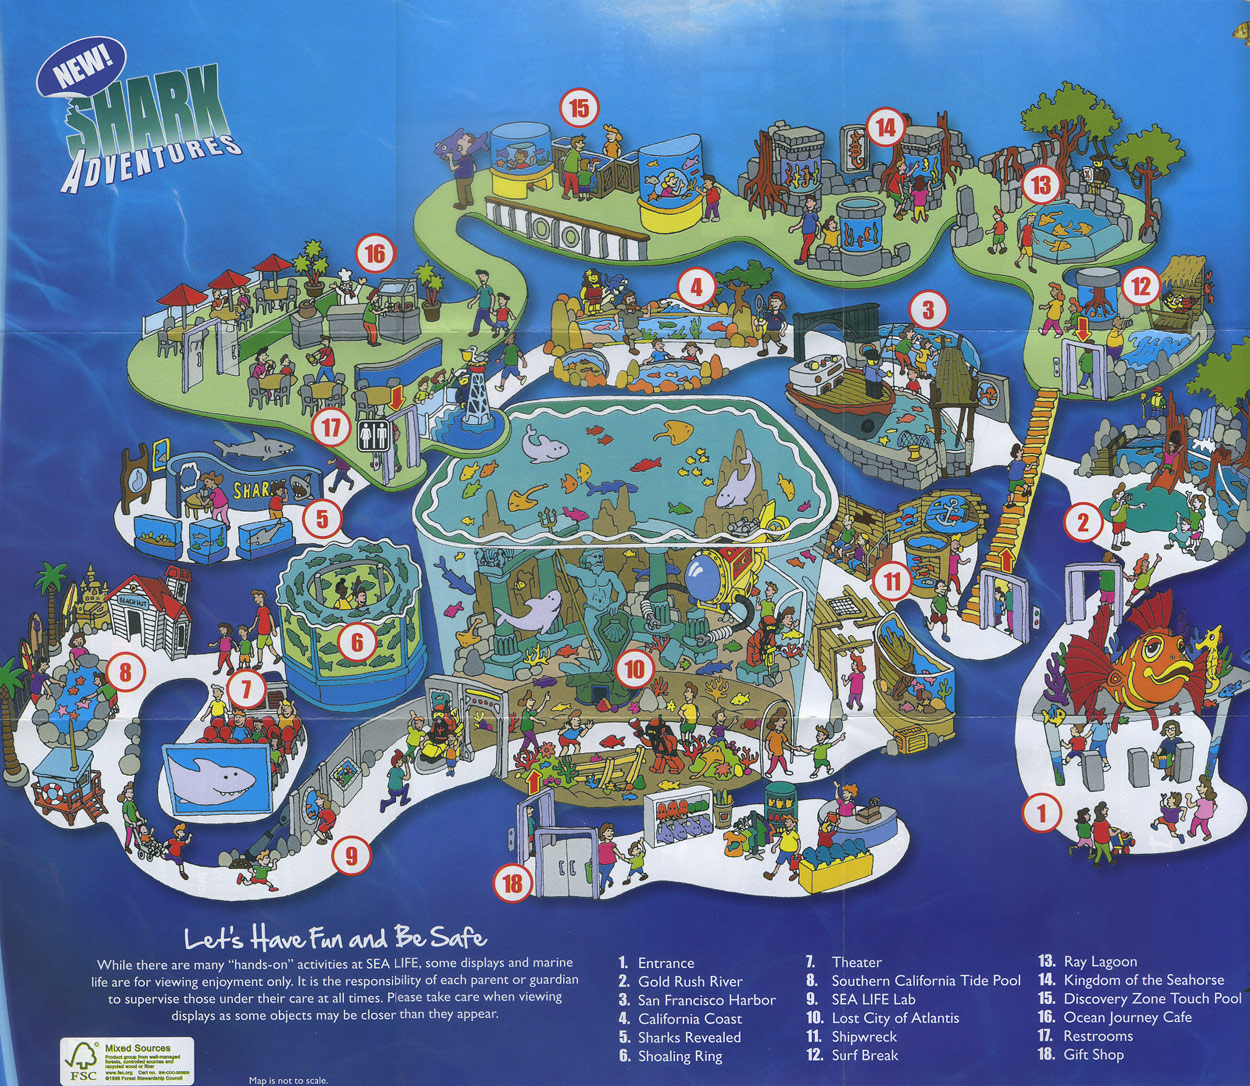 Theme Park Brochures Sea Life Aquarium - Theme Park Brochures - Florida Aquarium Map